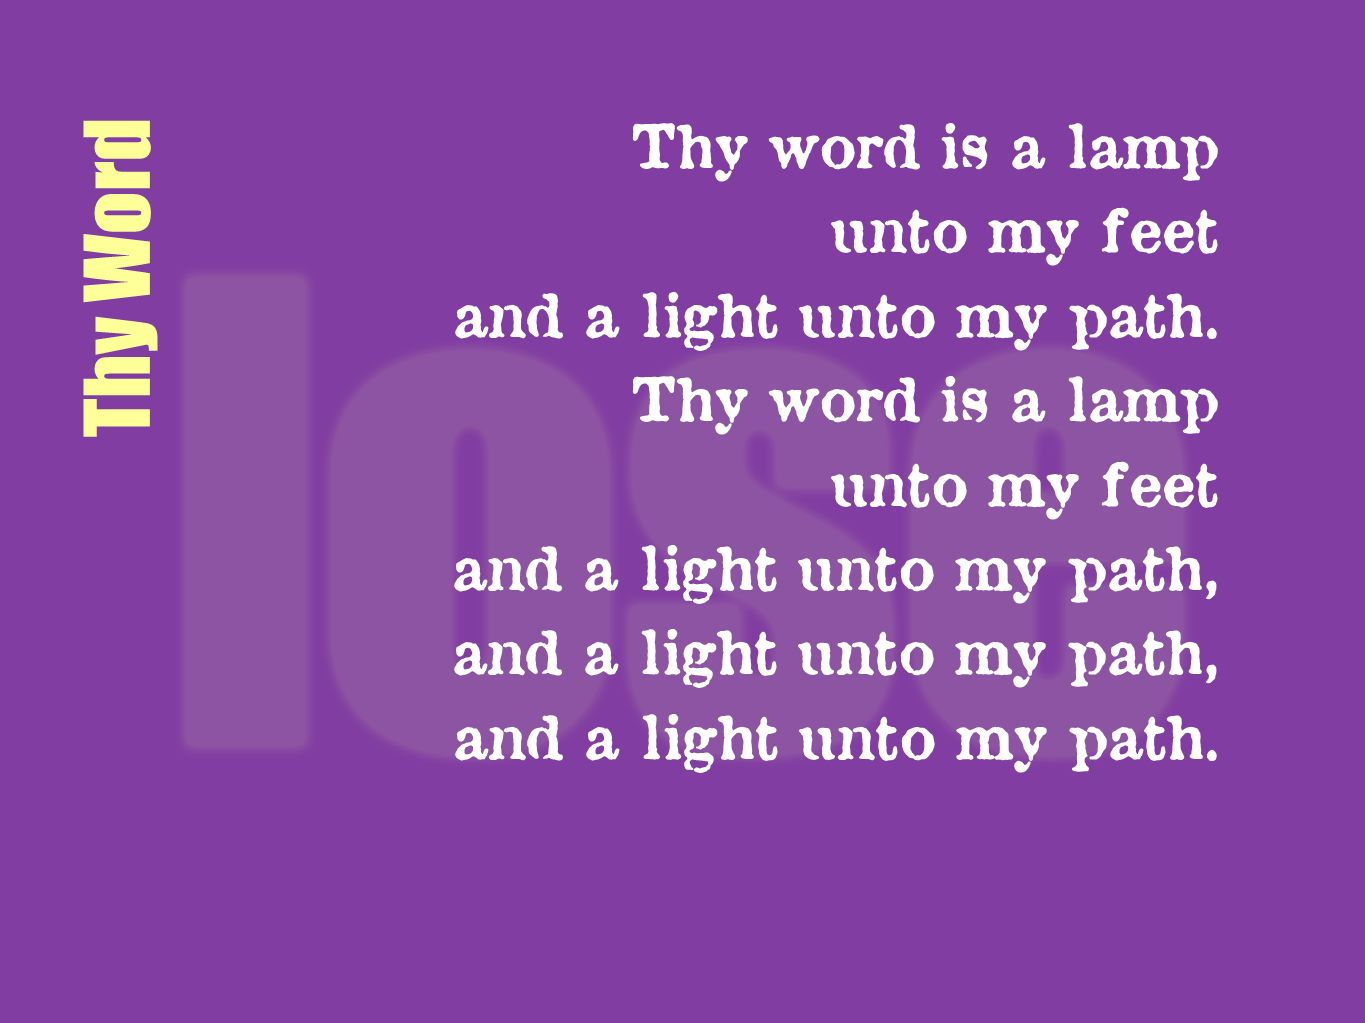 Thy Word Thy word is a lamp unto my feet and a light unto my path. Thy word is a lamp unto my feet and a light unto my path, and a light unto my path.